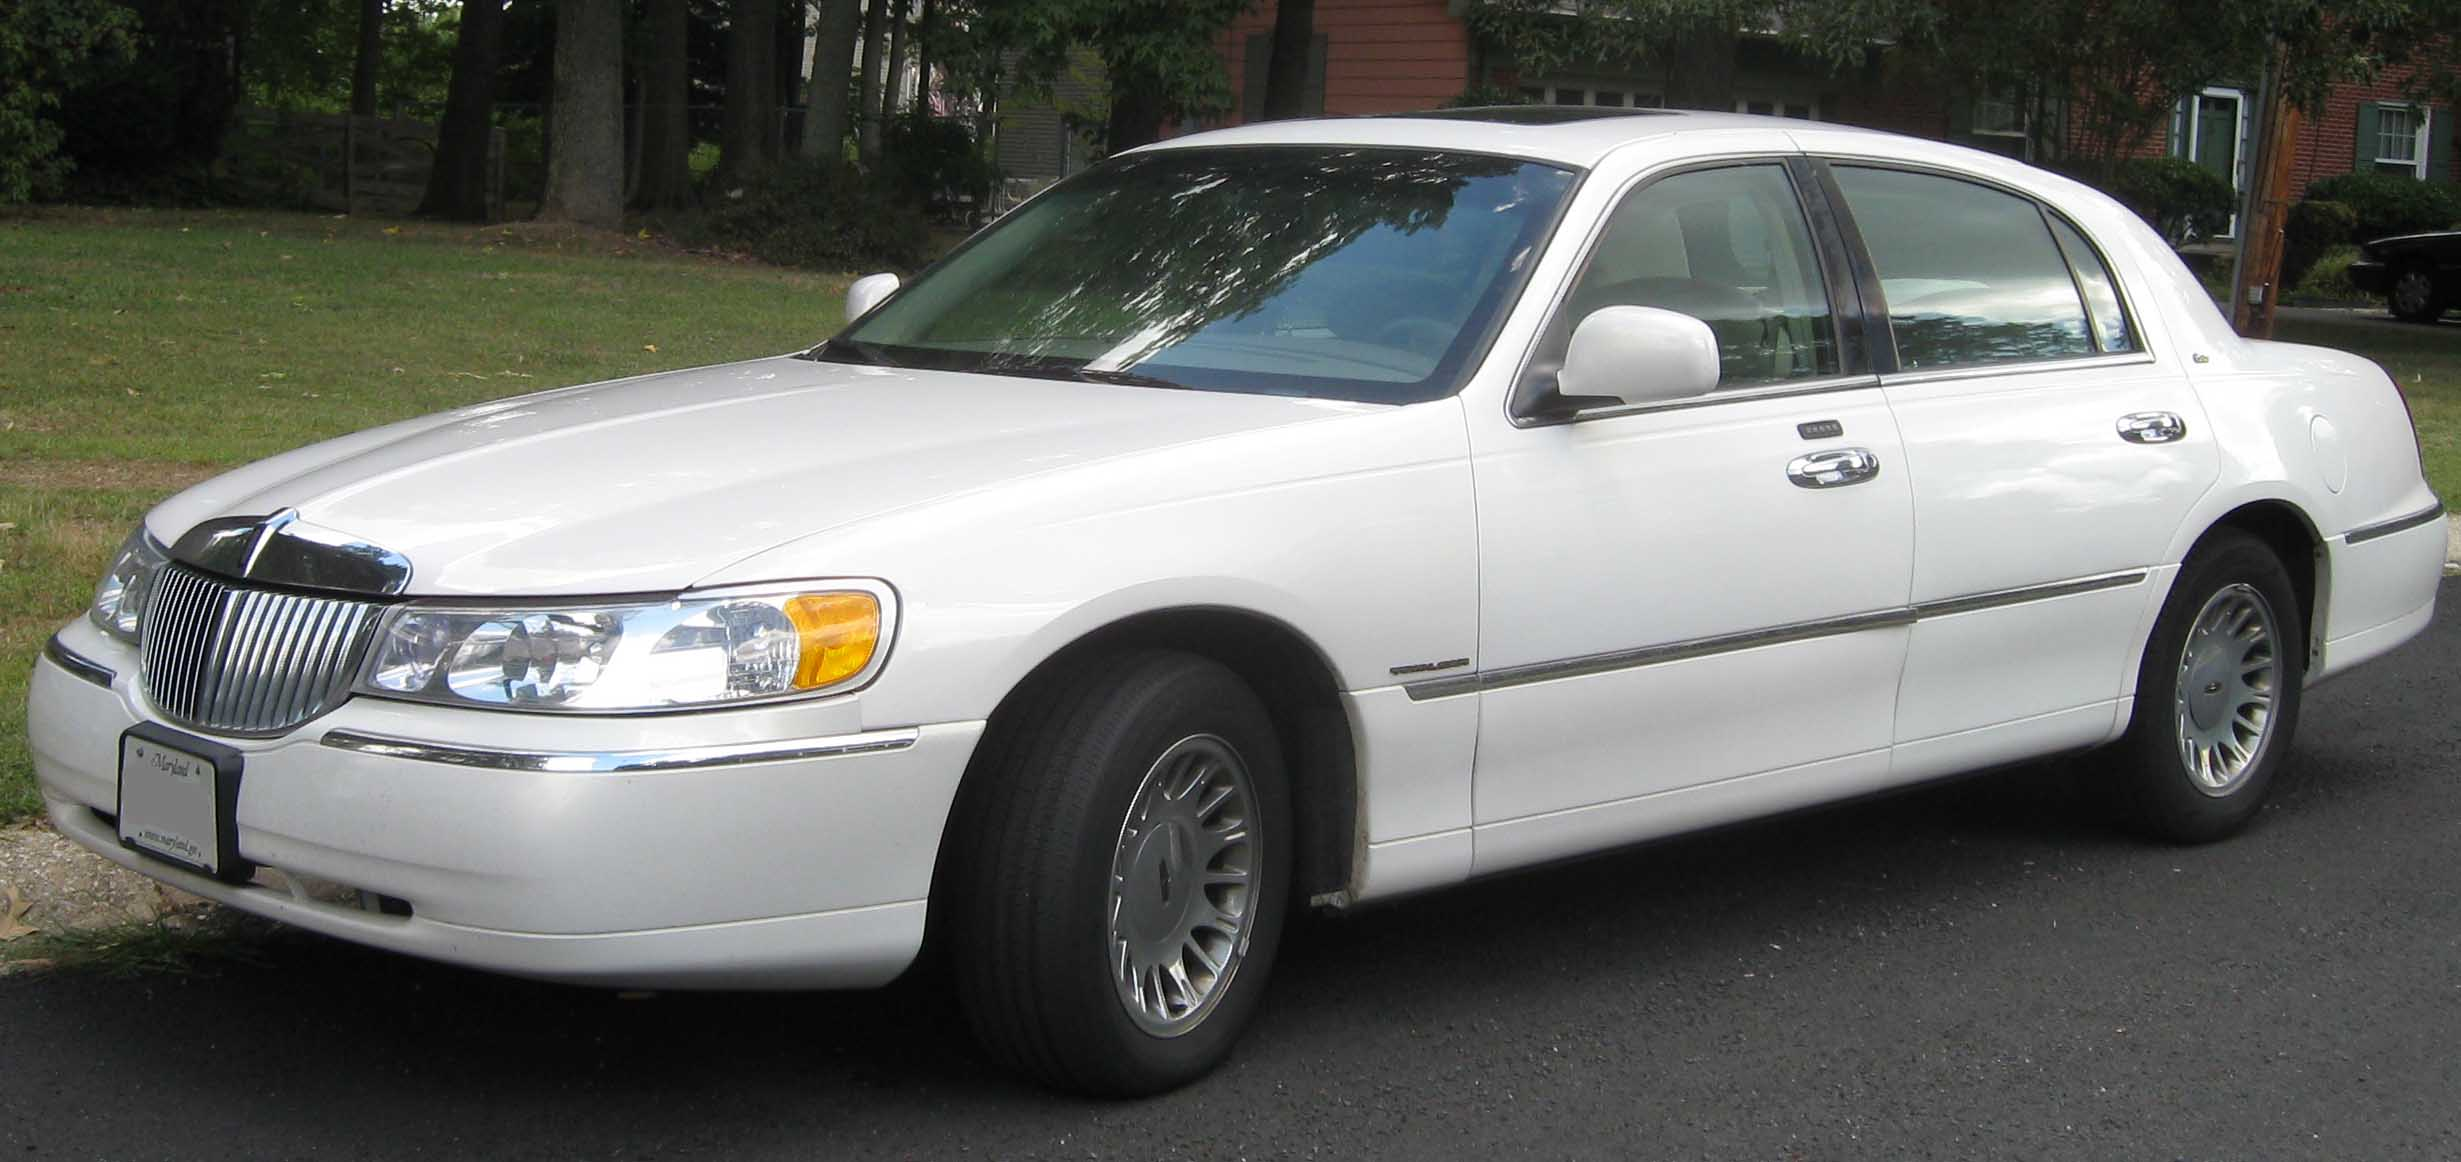 Fil98 02 Lincoln Town Car Cartierjpg Wikipedia